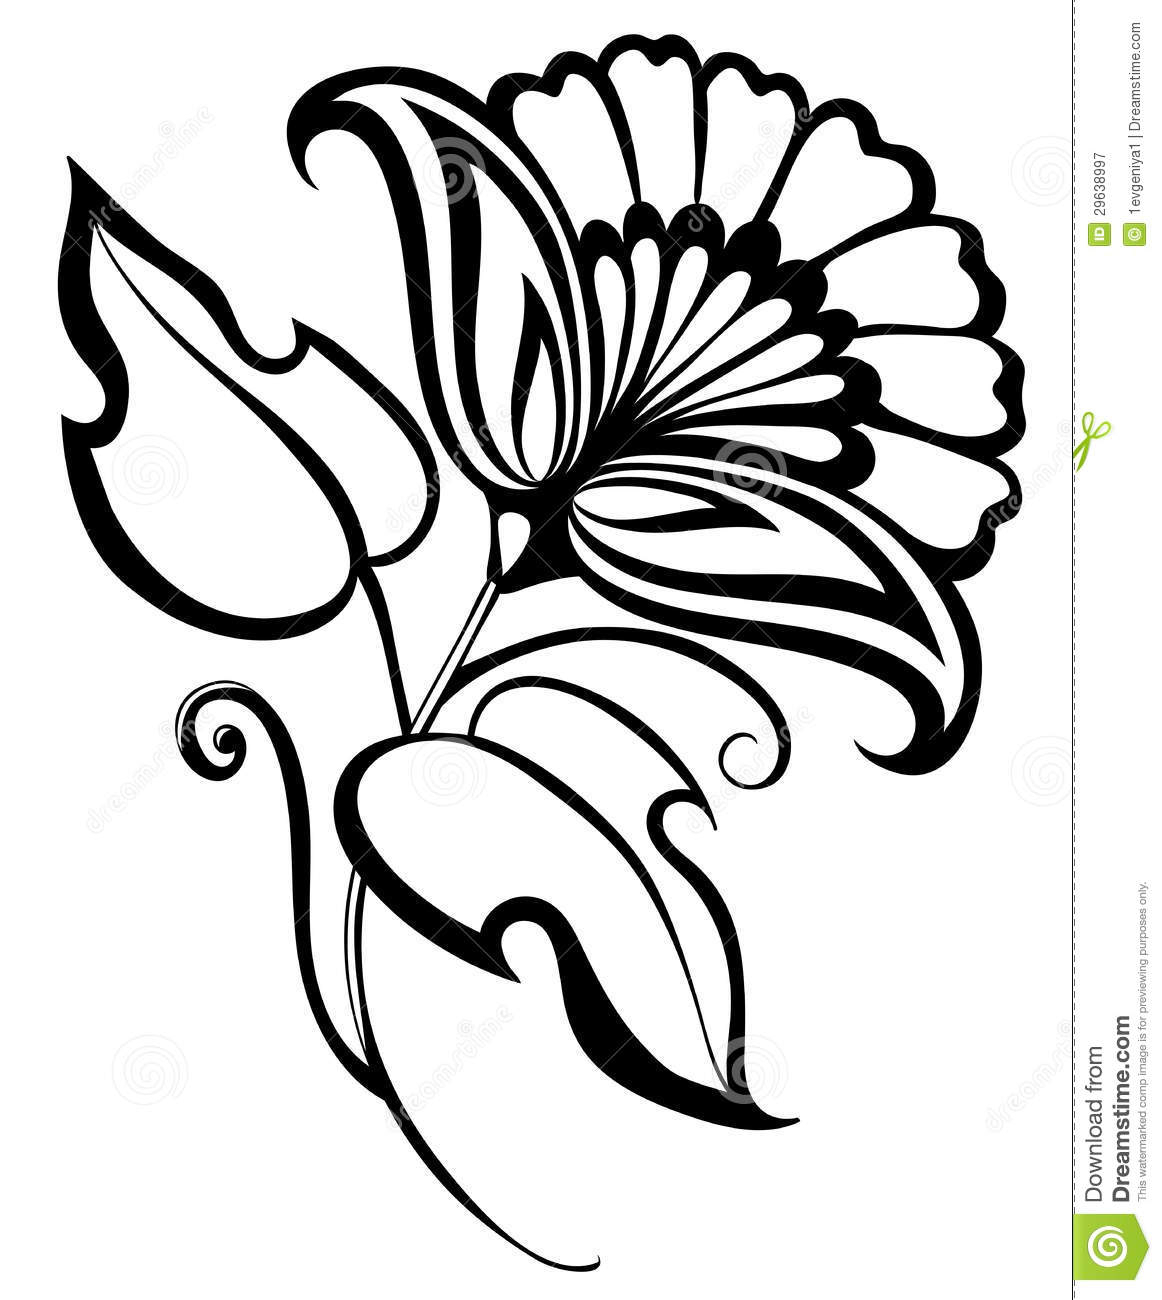 1162x1300 Pencil Drawing Simple Flower Disign And Pencil Drawing Simple